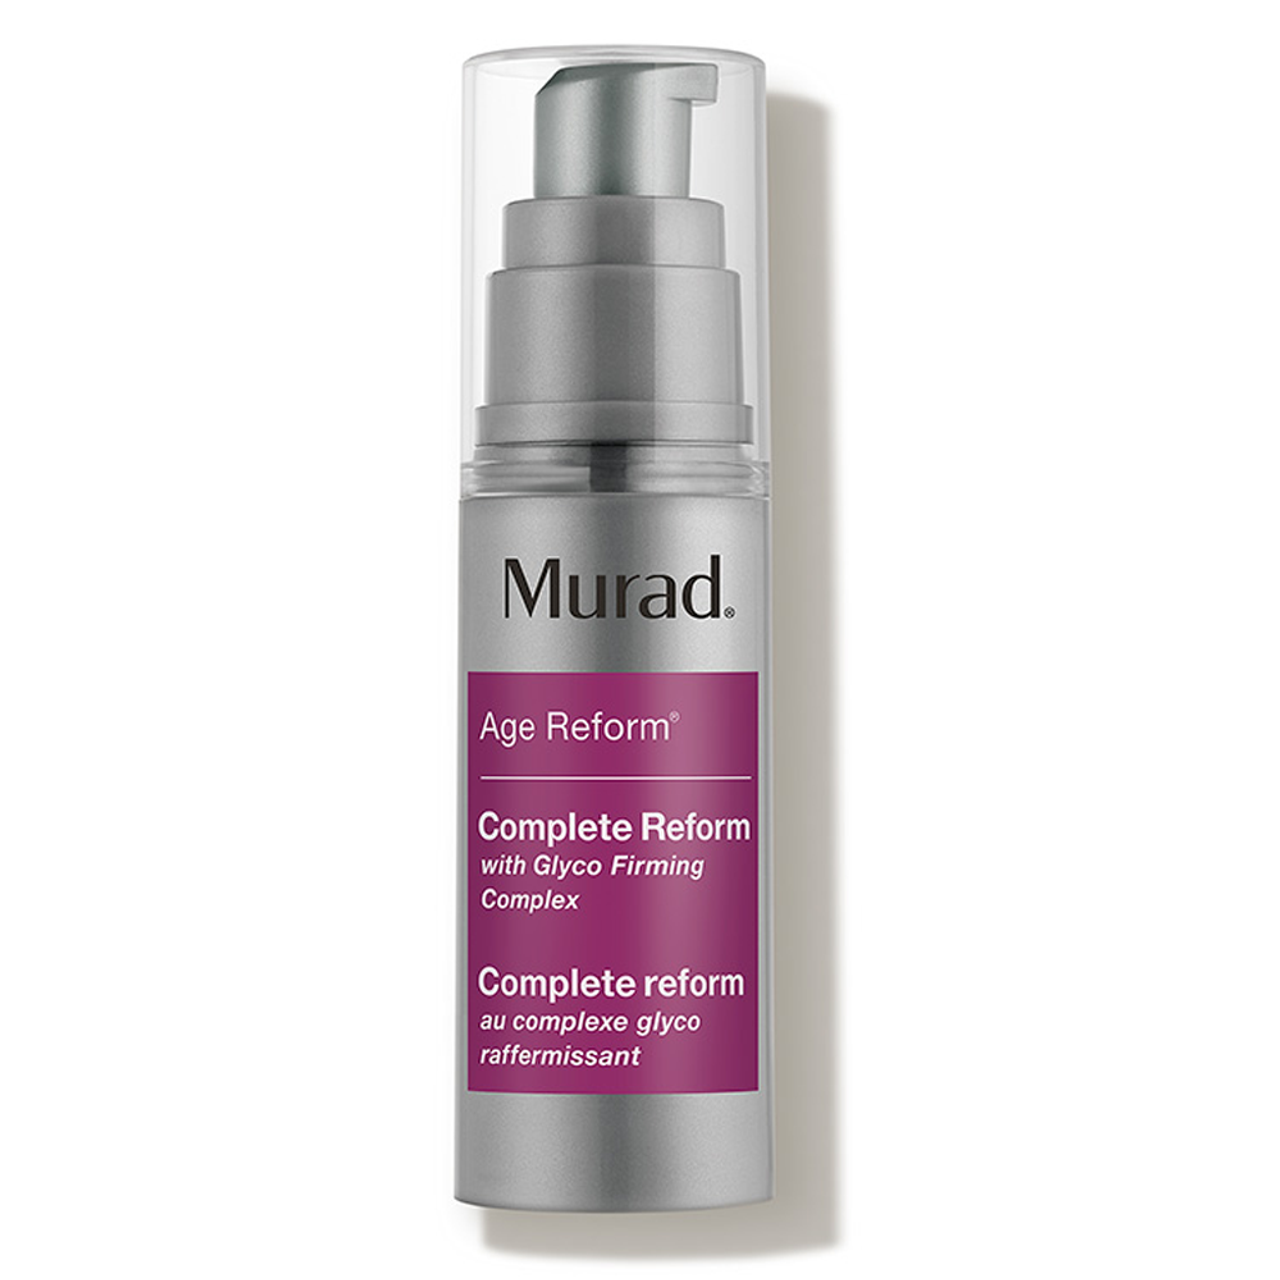 Murad Complete Reform (discontinued)